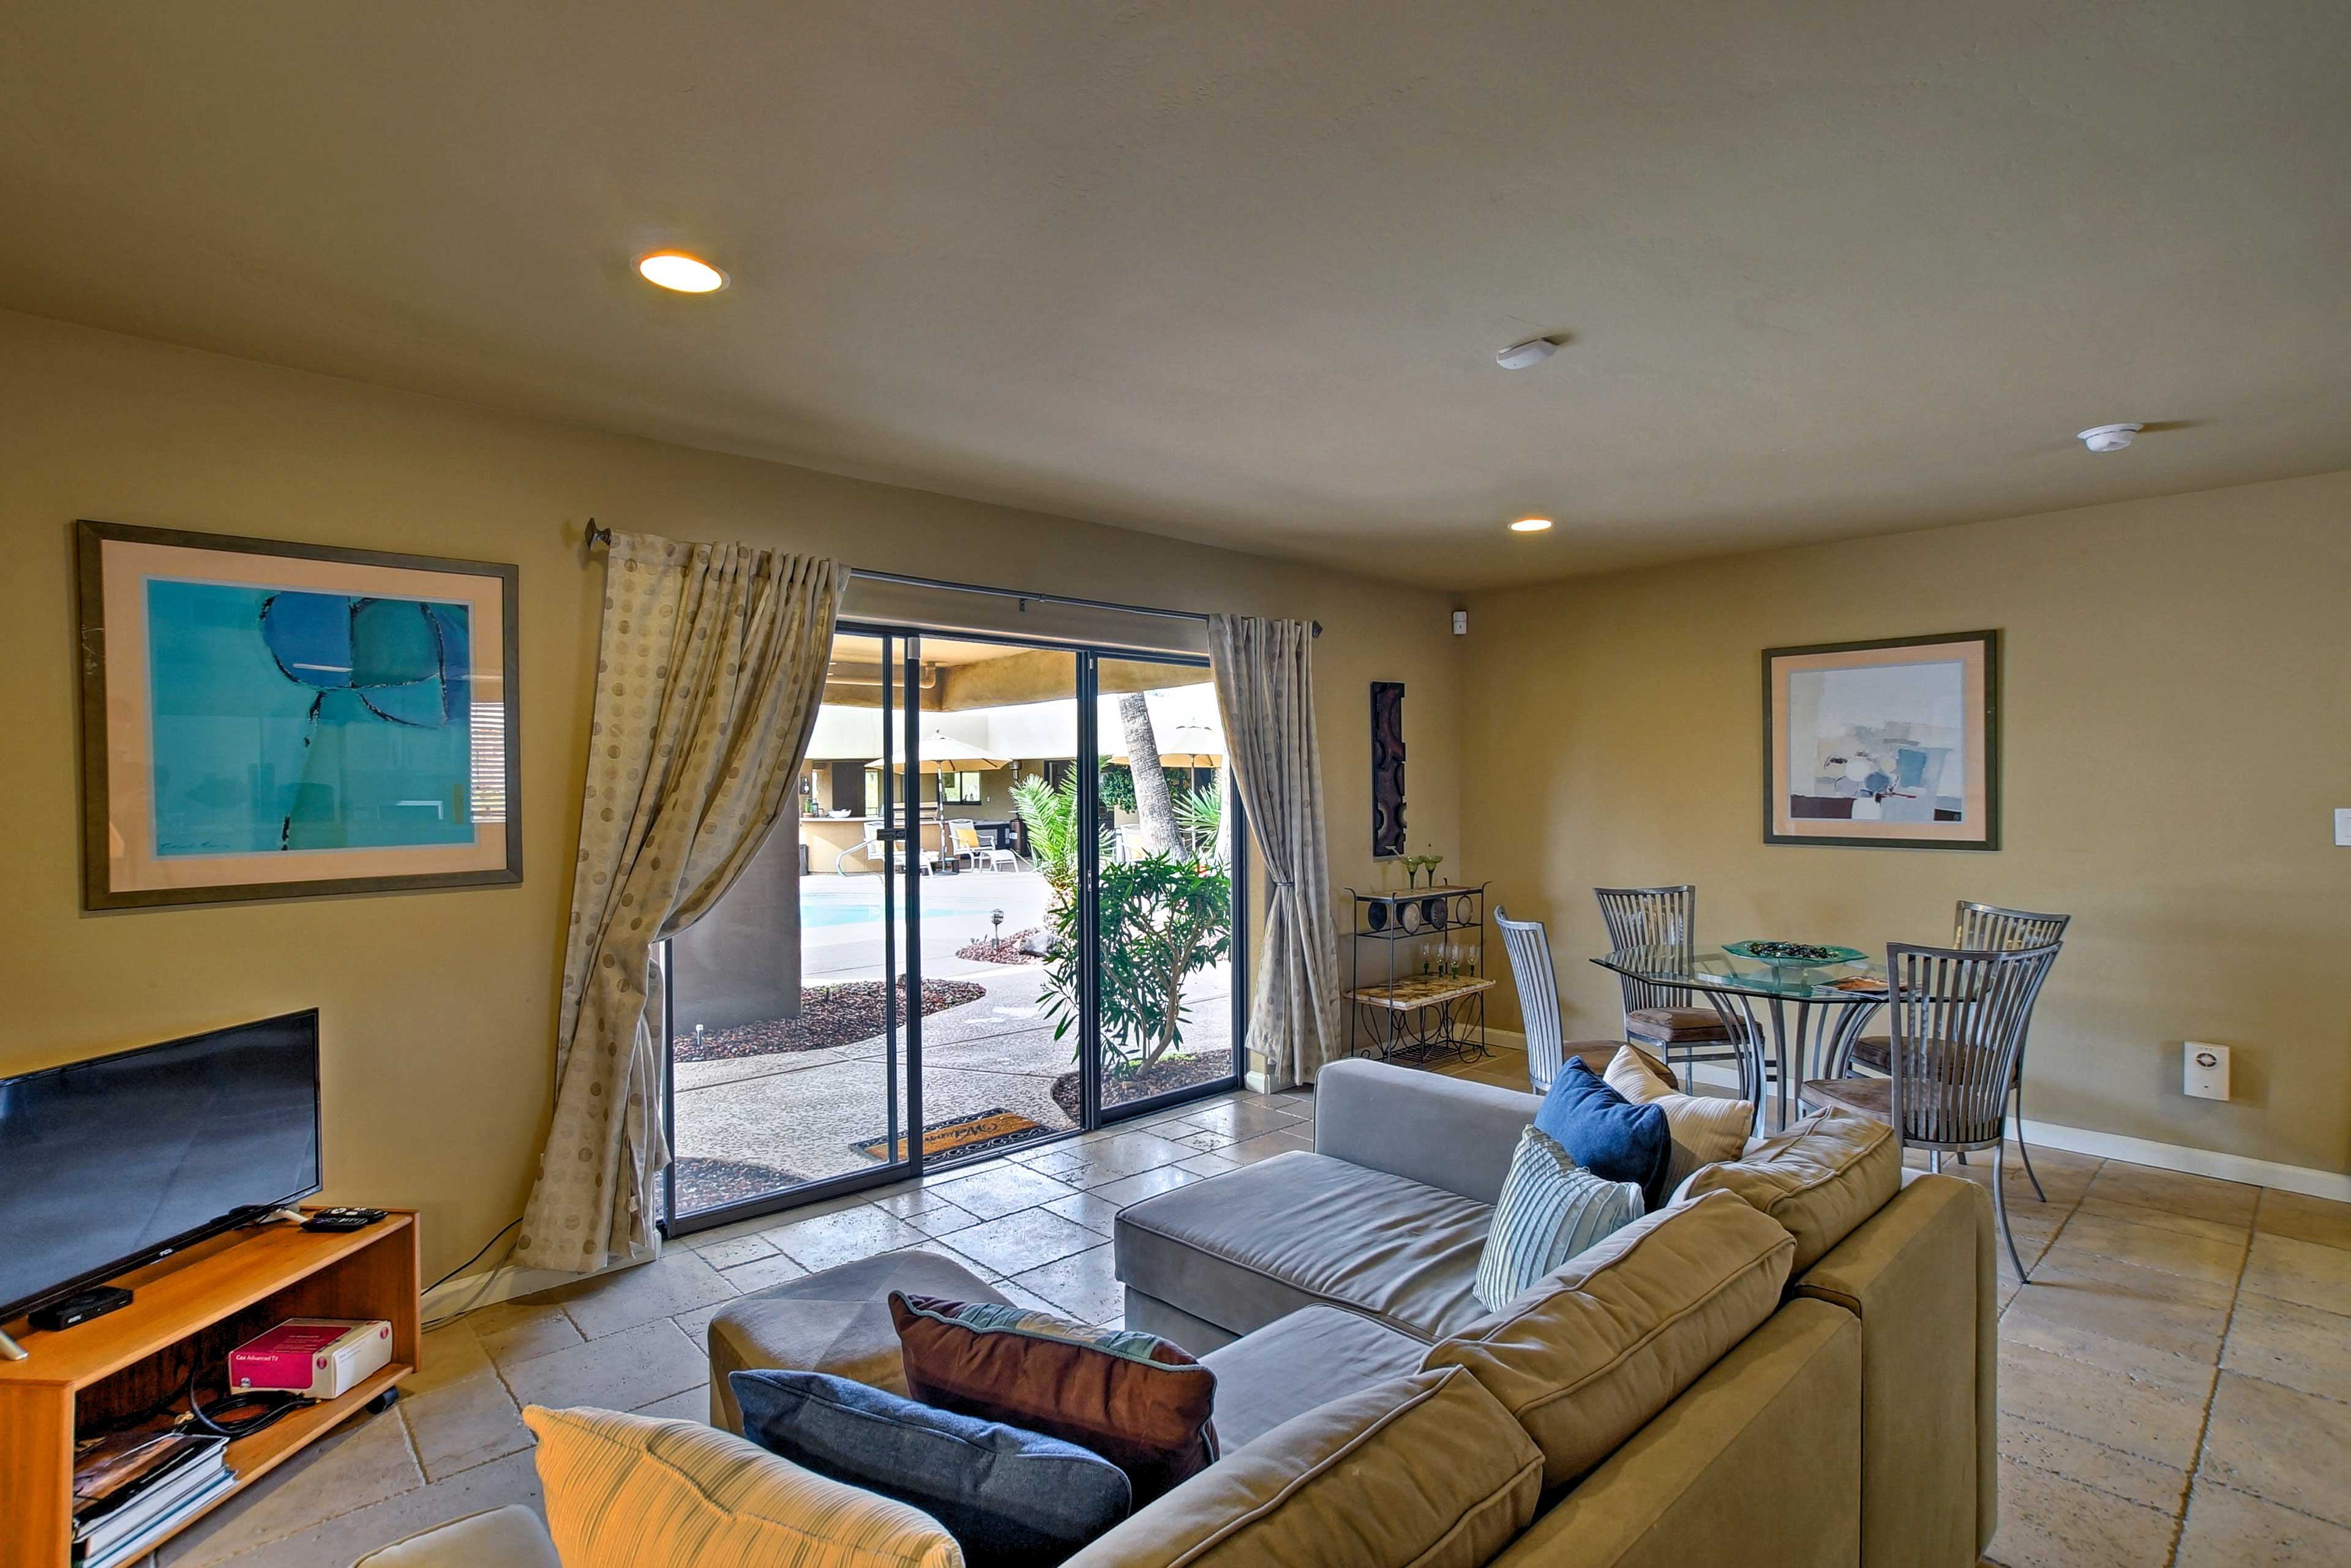 The open floor plan gives the home a spacious feel.